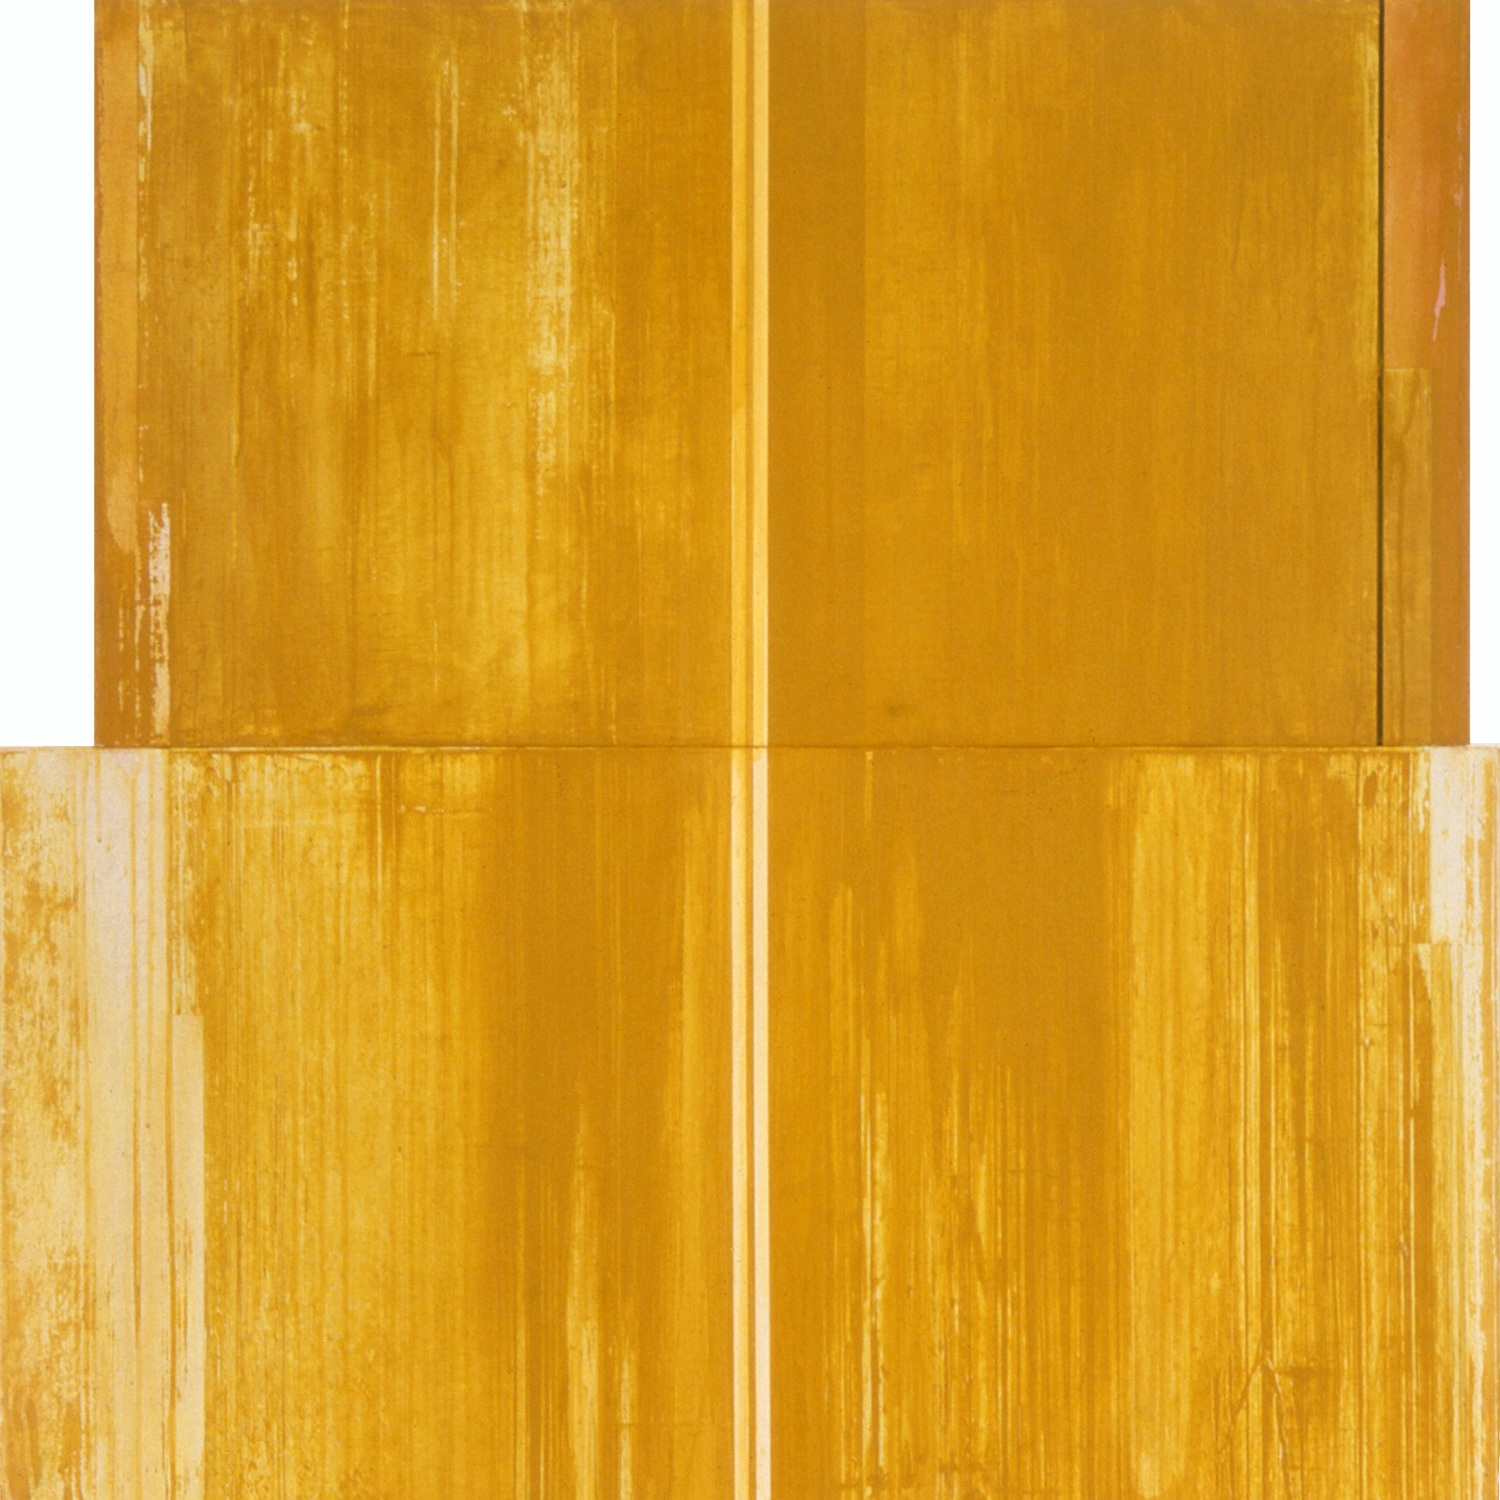 Divided Square 53, 1989, Acrylic on canvas over panels, 48 x 48 inches.